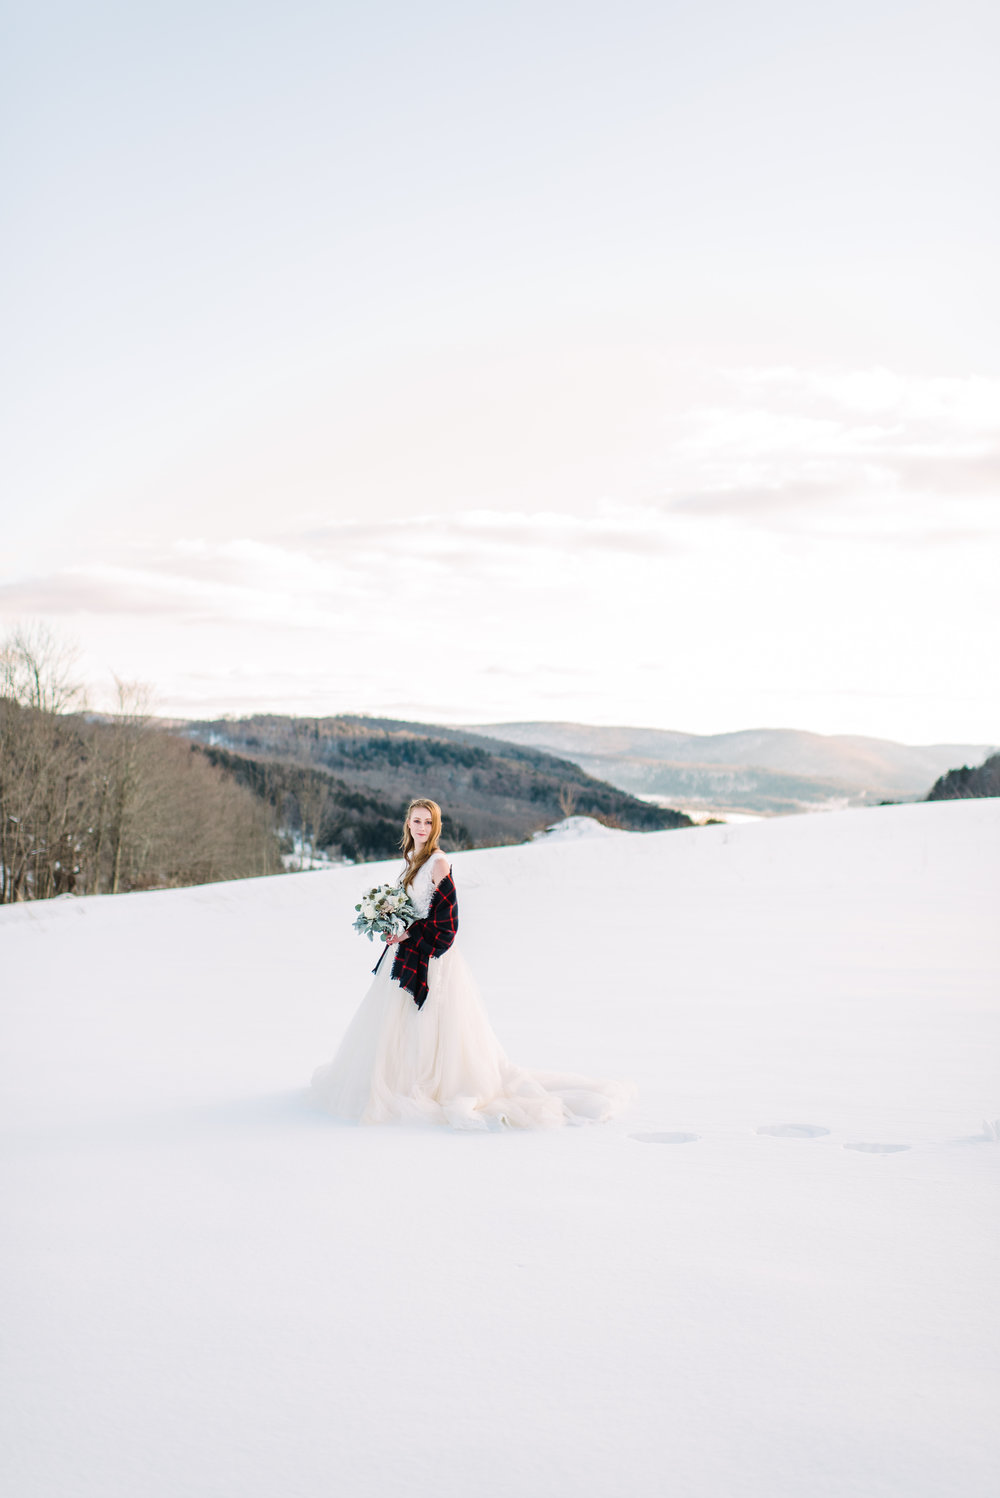 wedding in the snowy mountains perfect outdoors wedding photo